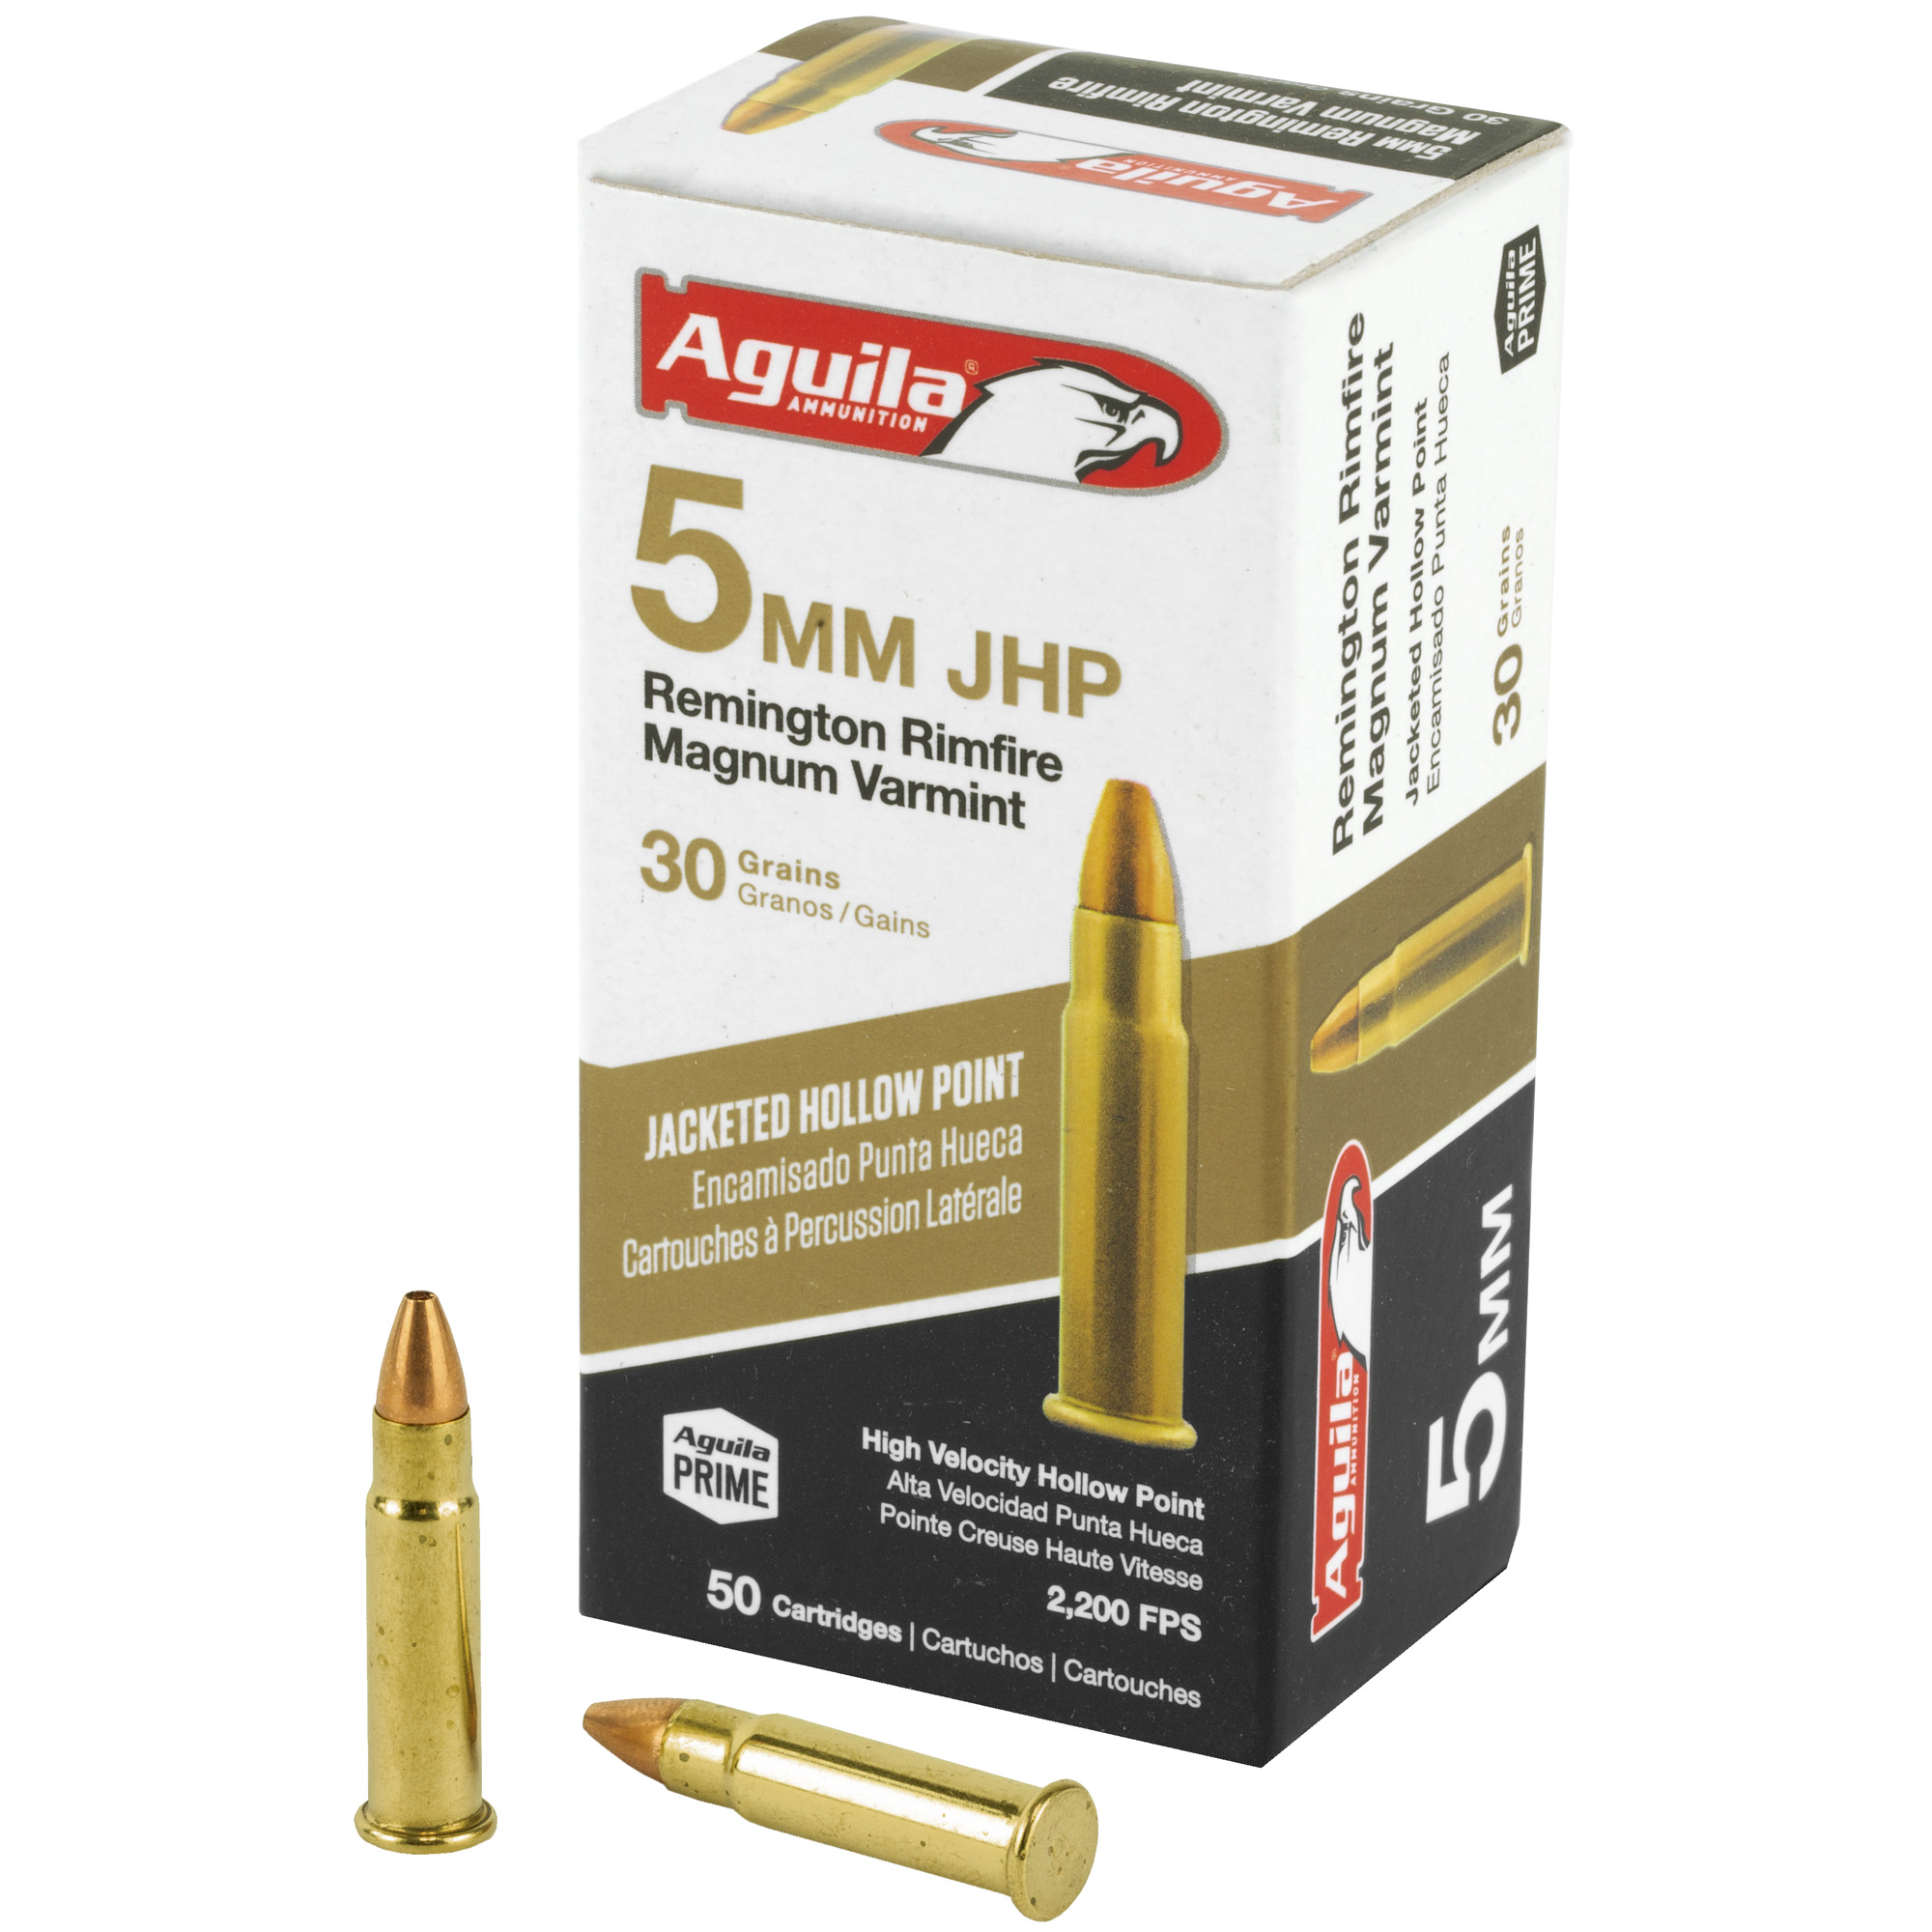 Aguila 5mm 30gr 50/1000